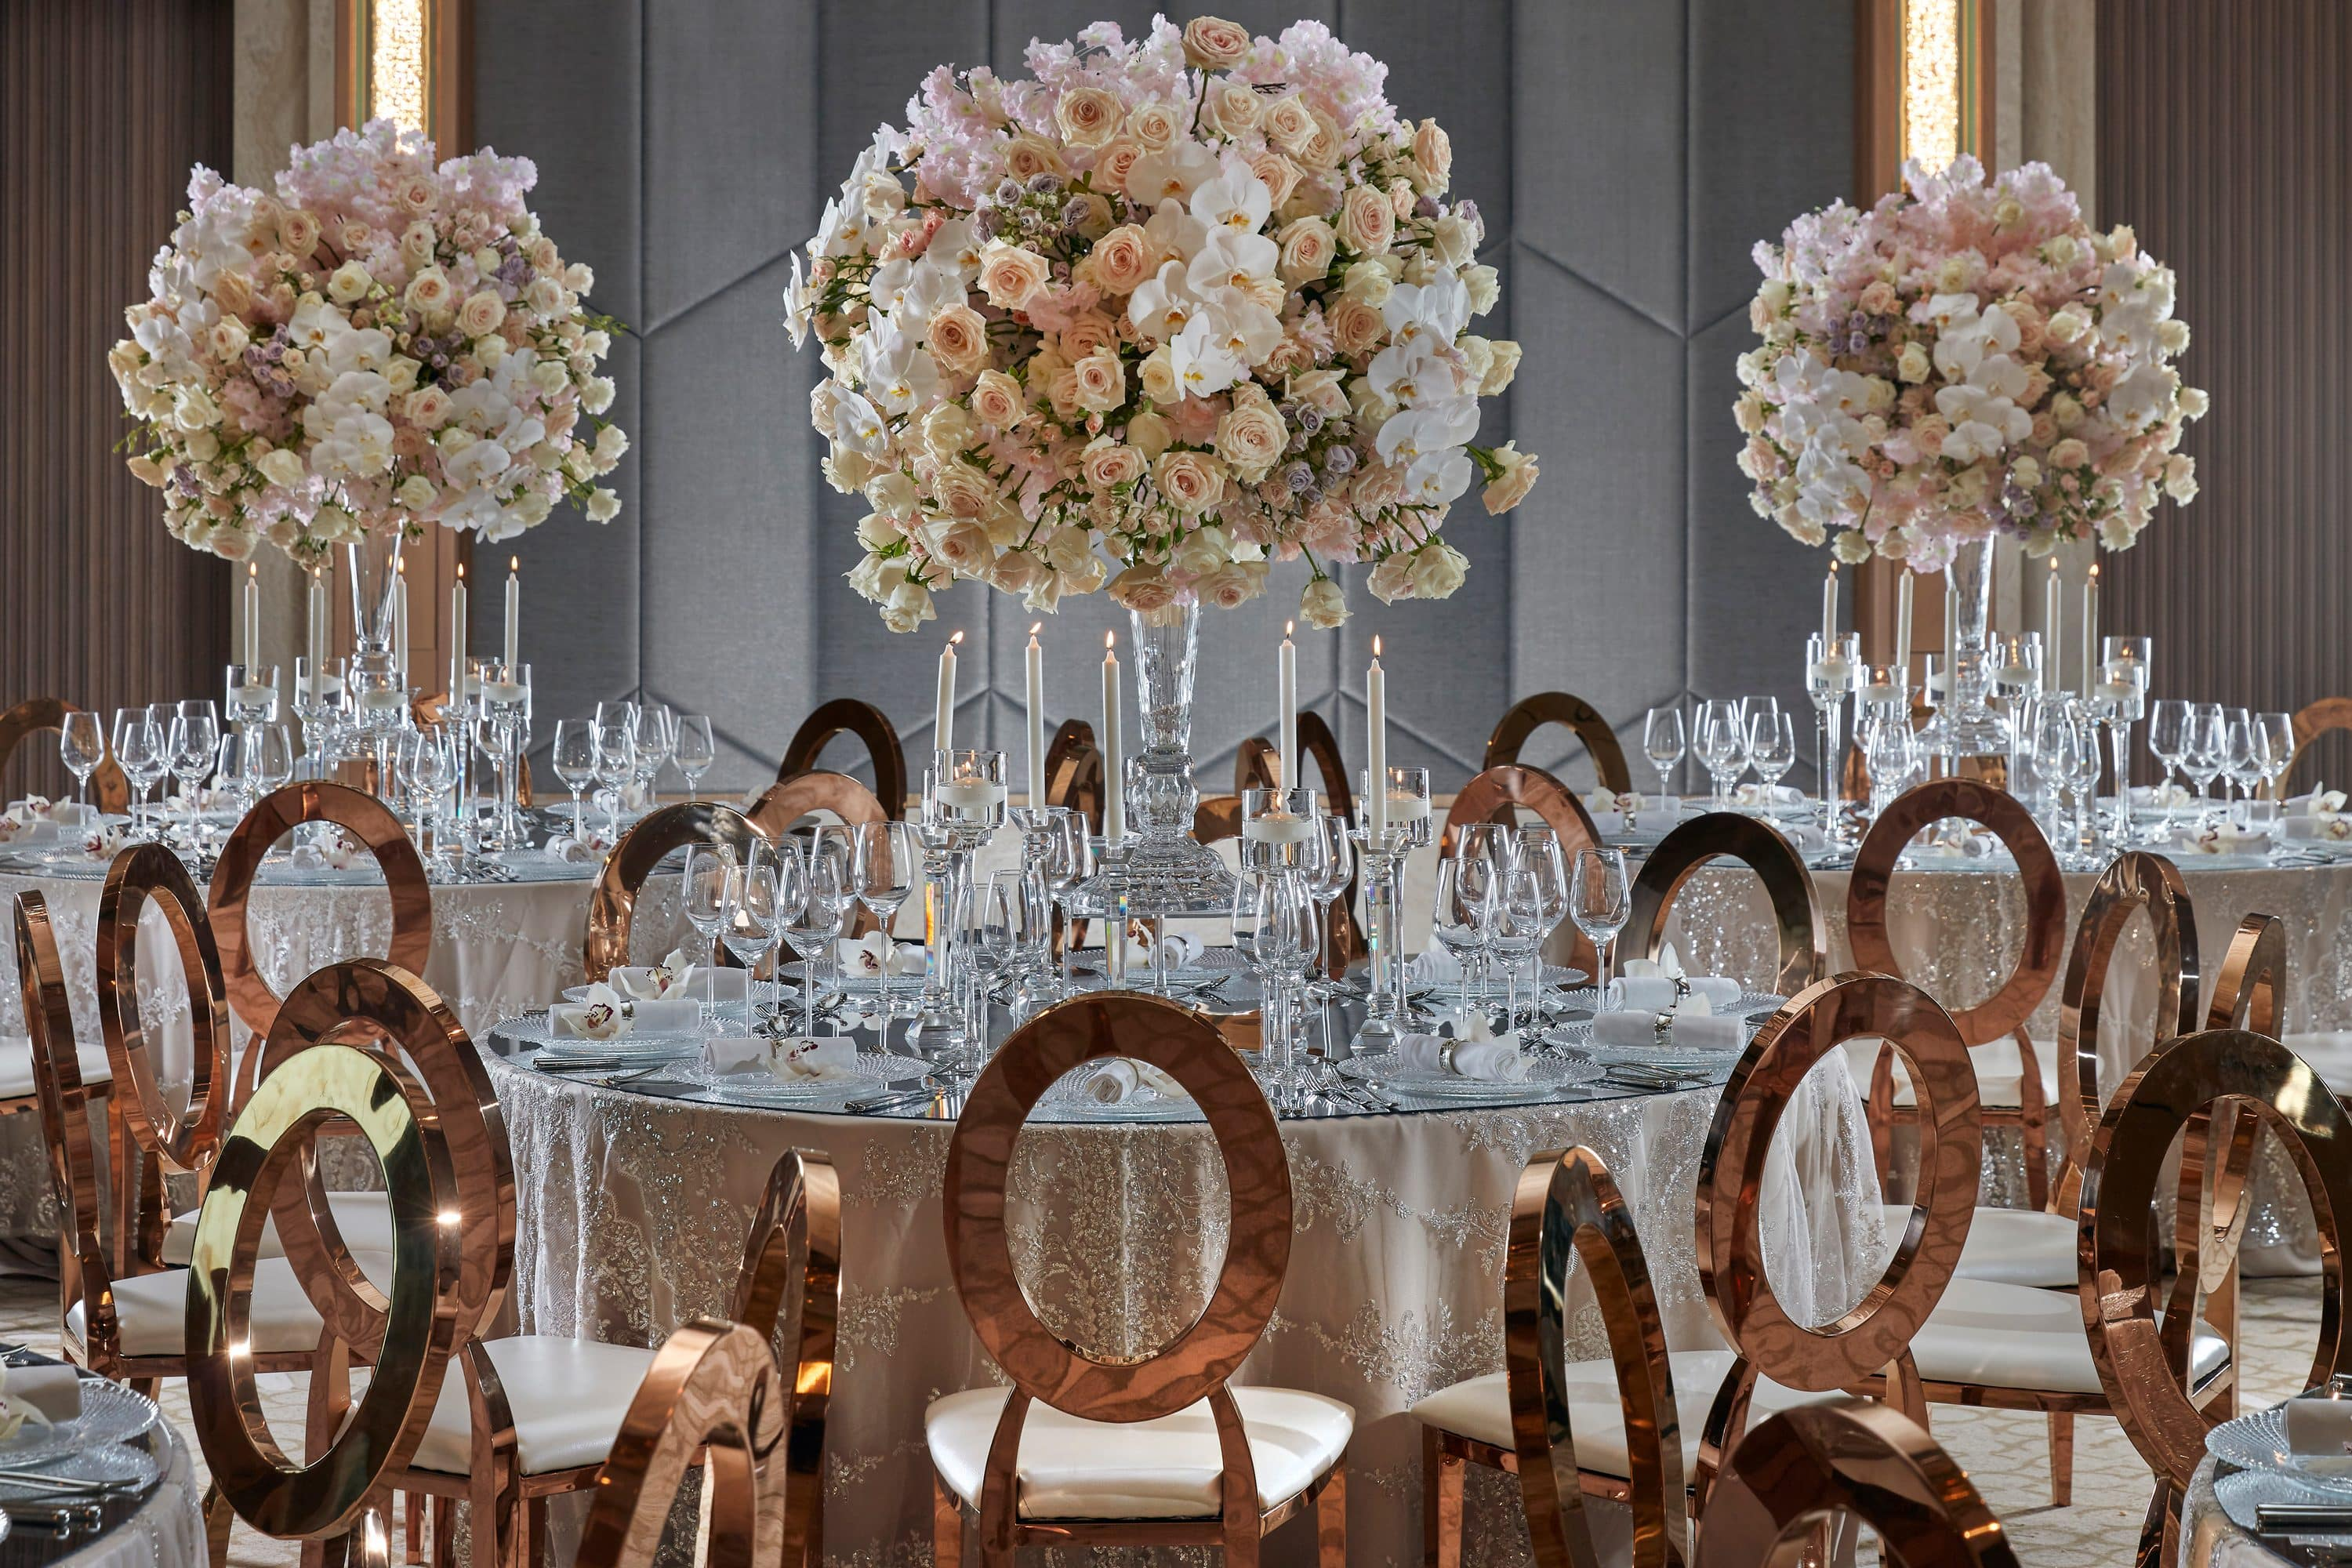 Tables lavishly dressed for a wedding reception